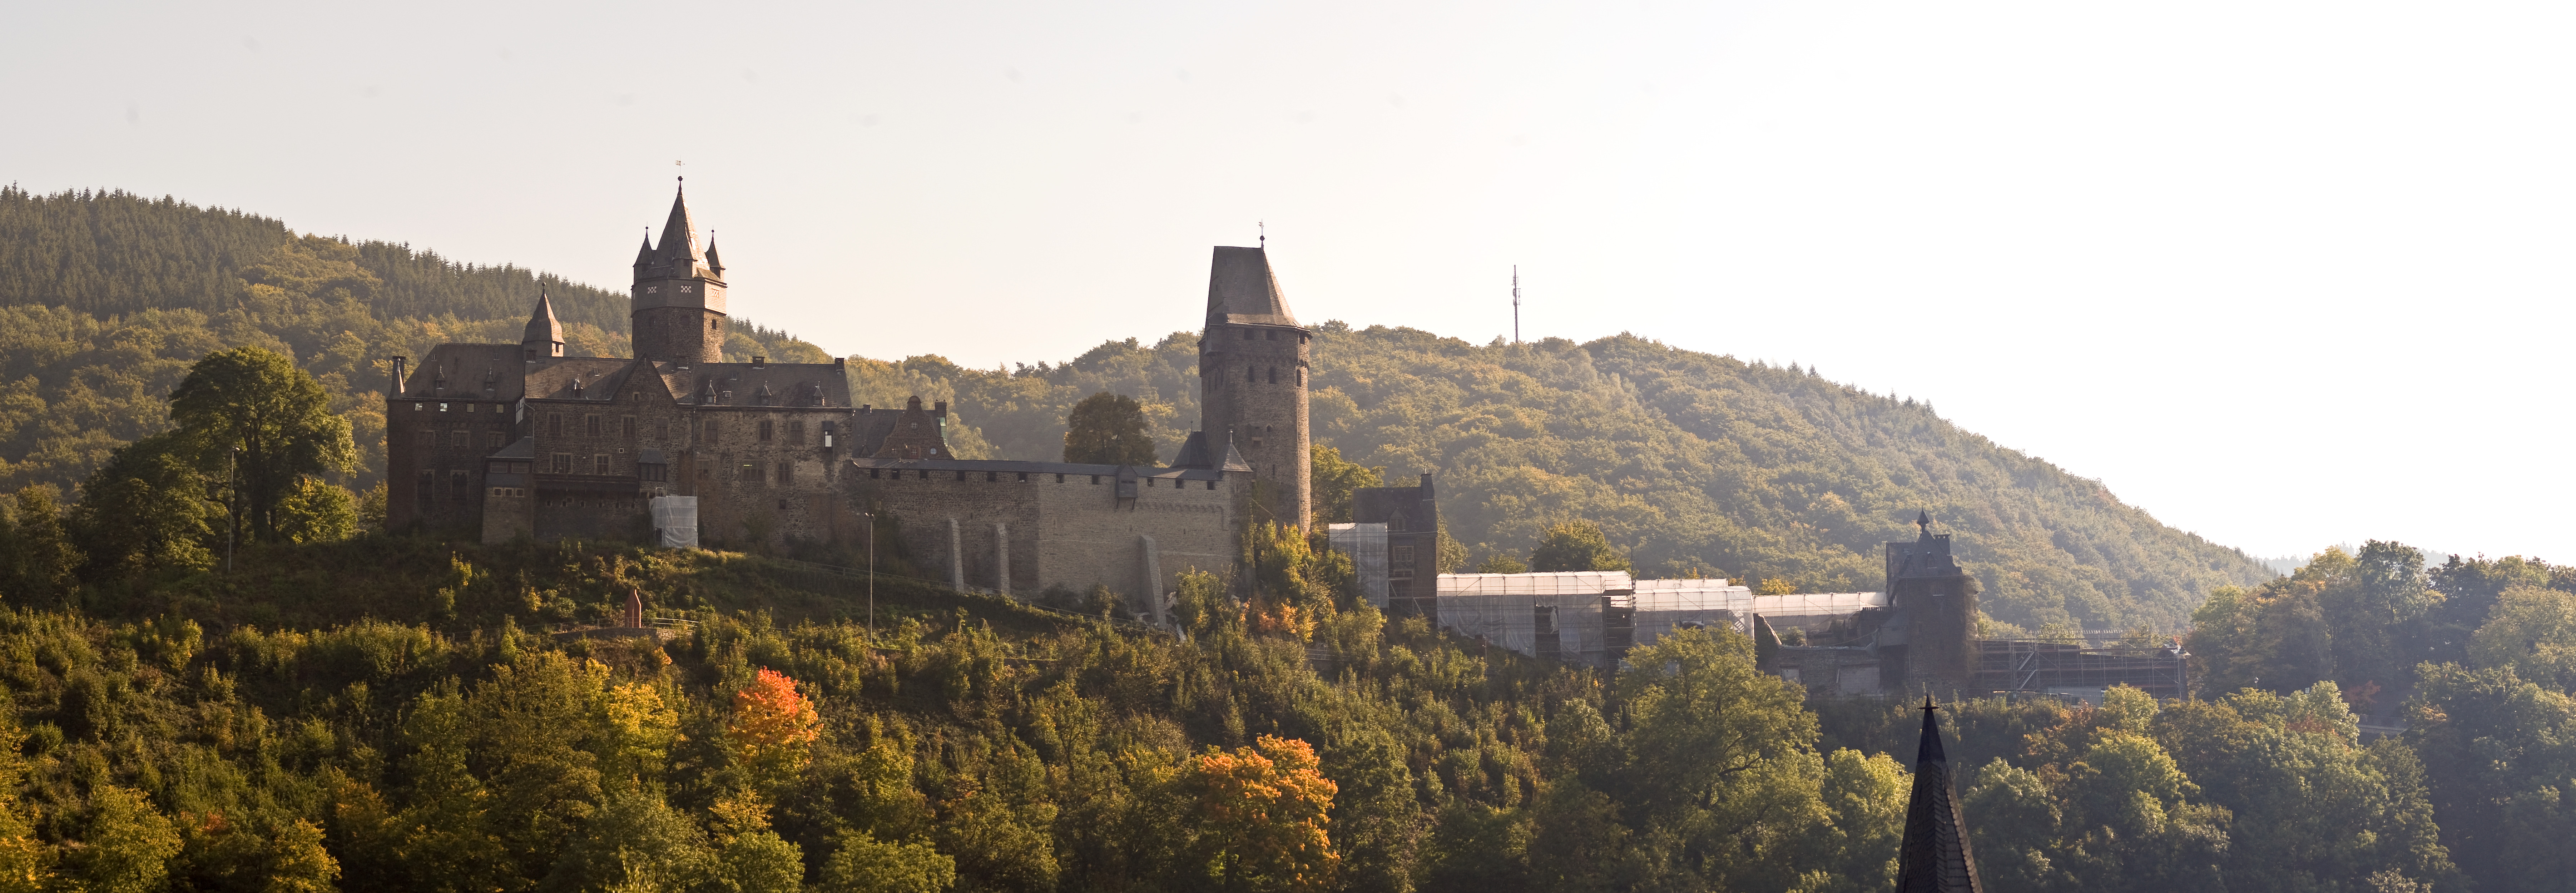 View of Altena Castle in September 2008